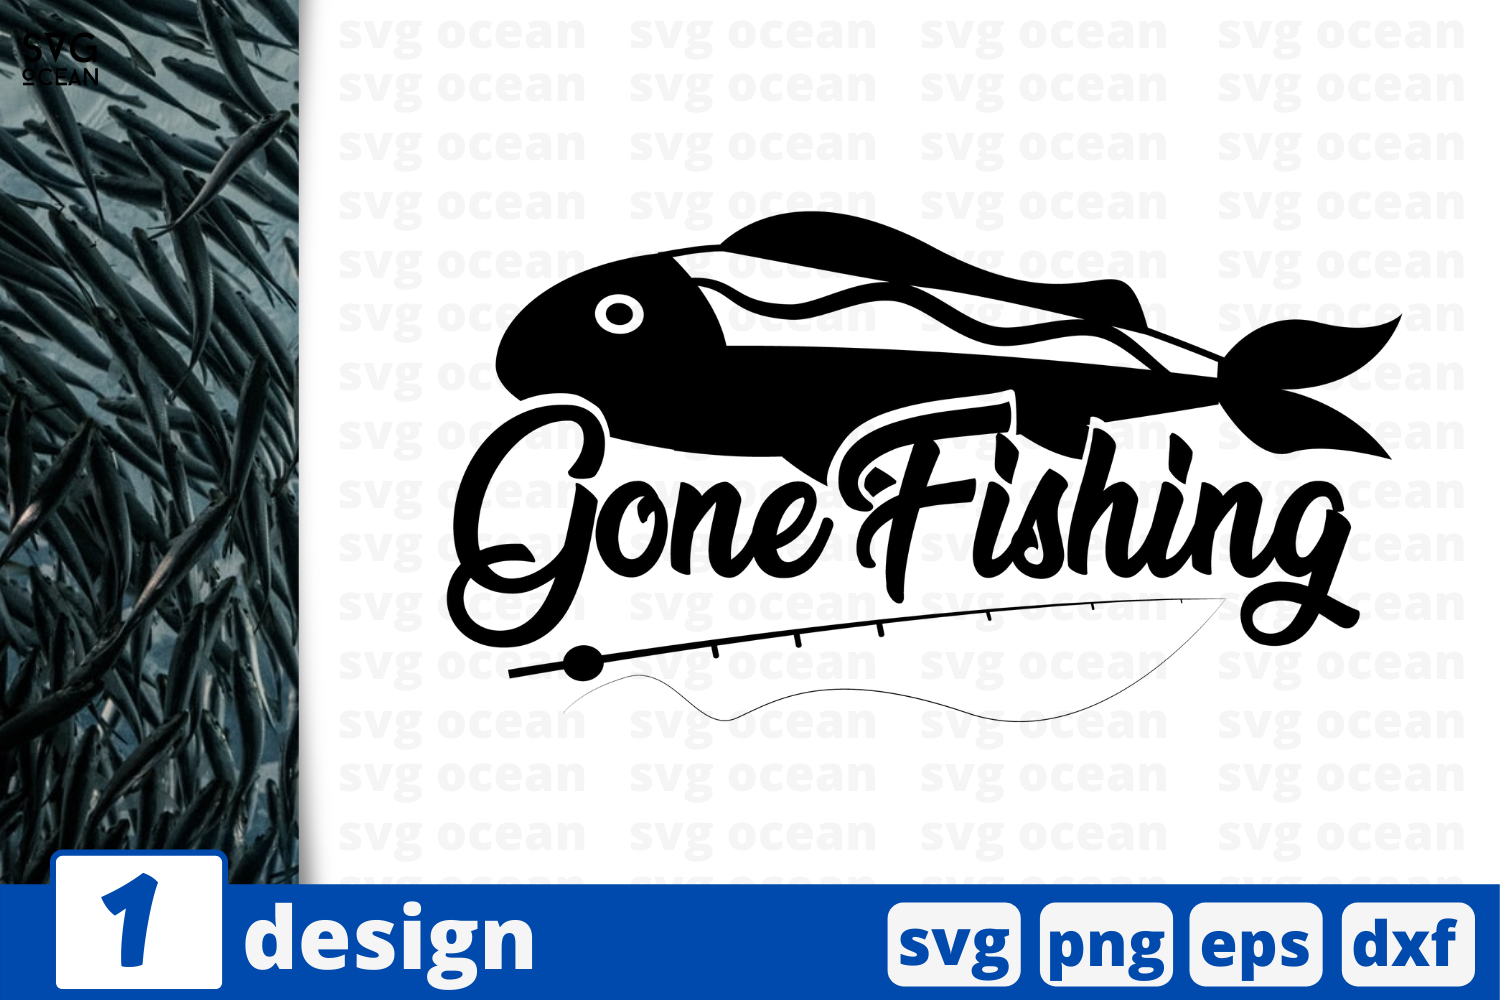 Download Free Gone Fishing Graphic By Svgocean Creative Fabrica for Cricut Explore, Silhouette and other cutting machines.